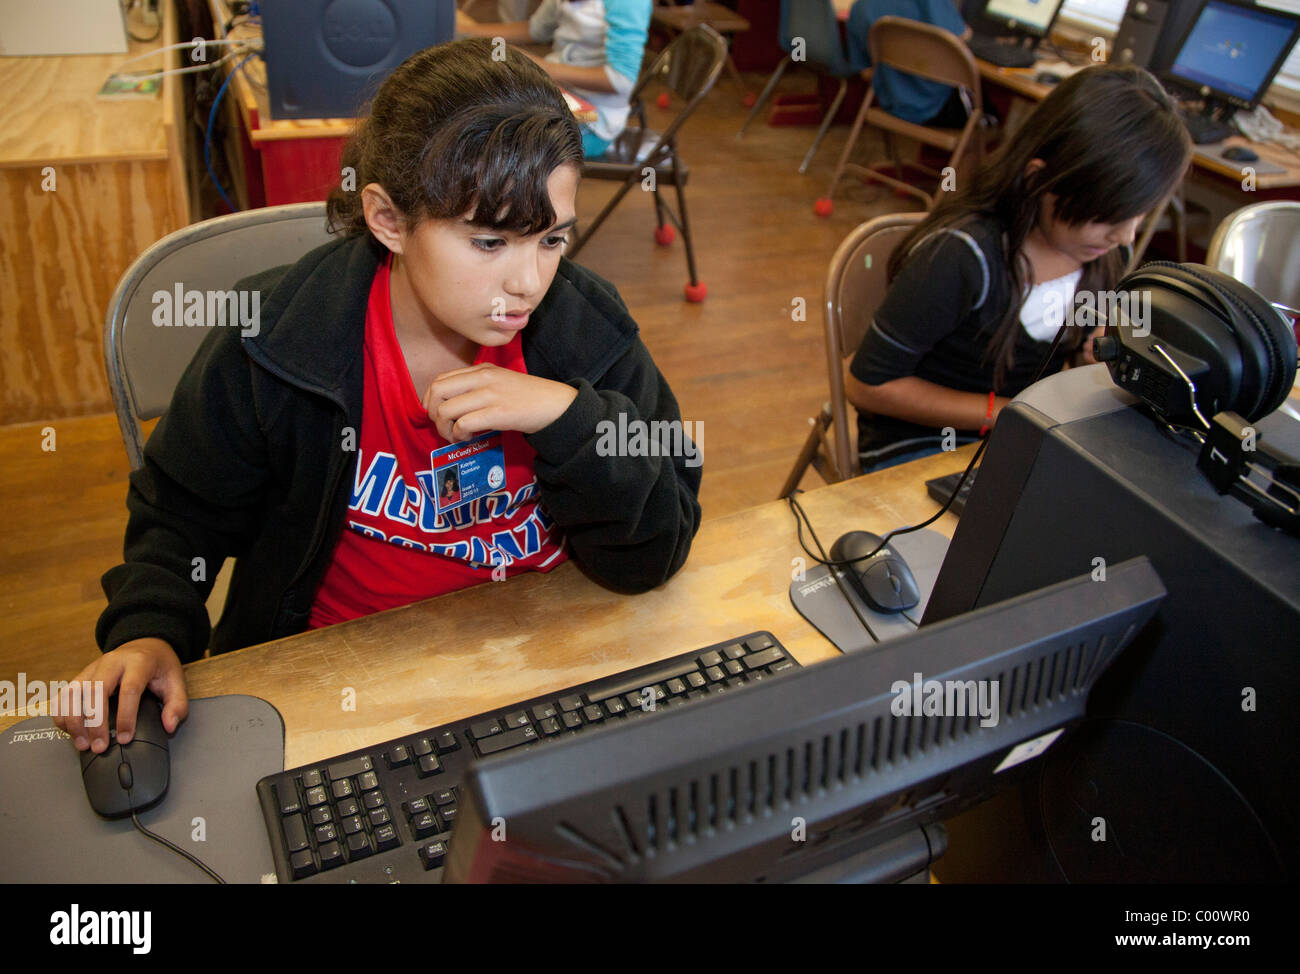 Fifth Grade Student in School's Computer Lab - Stock Image